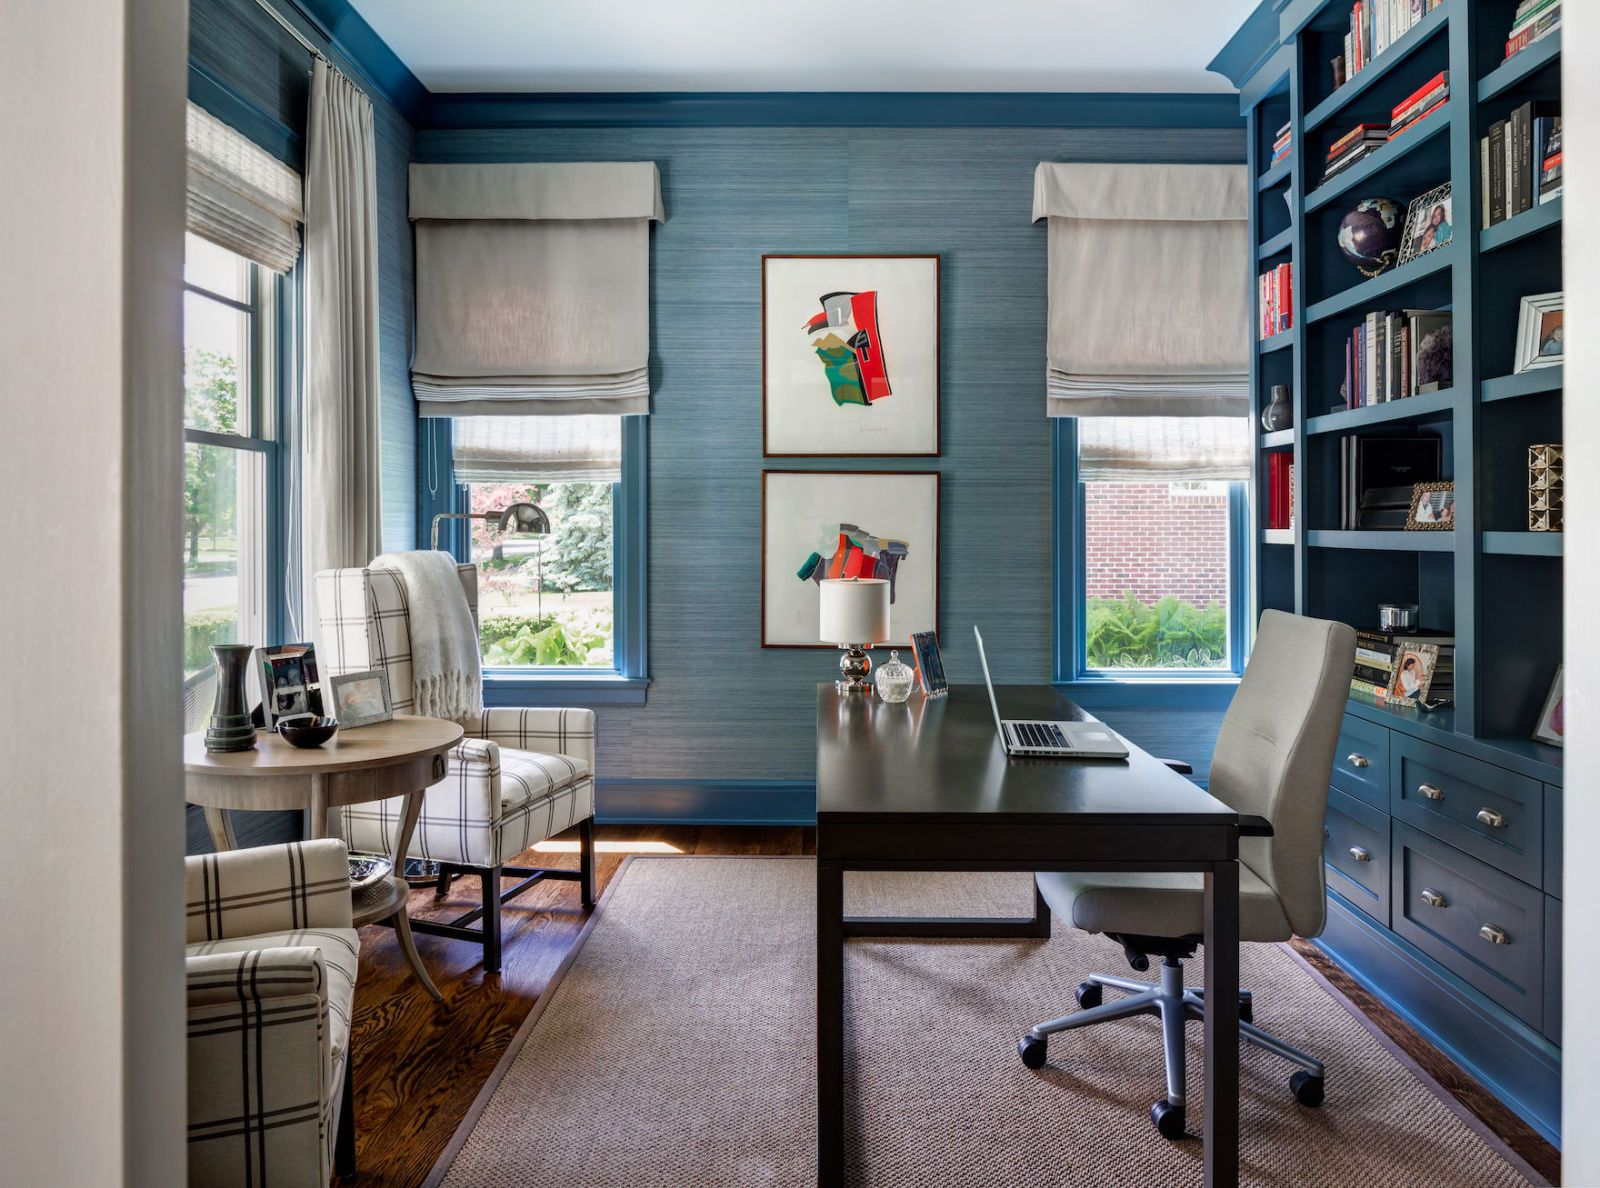 blue walls living room wallpaper for rooms ideas 53 stylish painted accent justin maconochie contrast crown molding